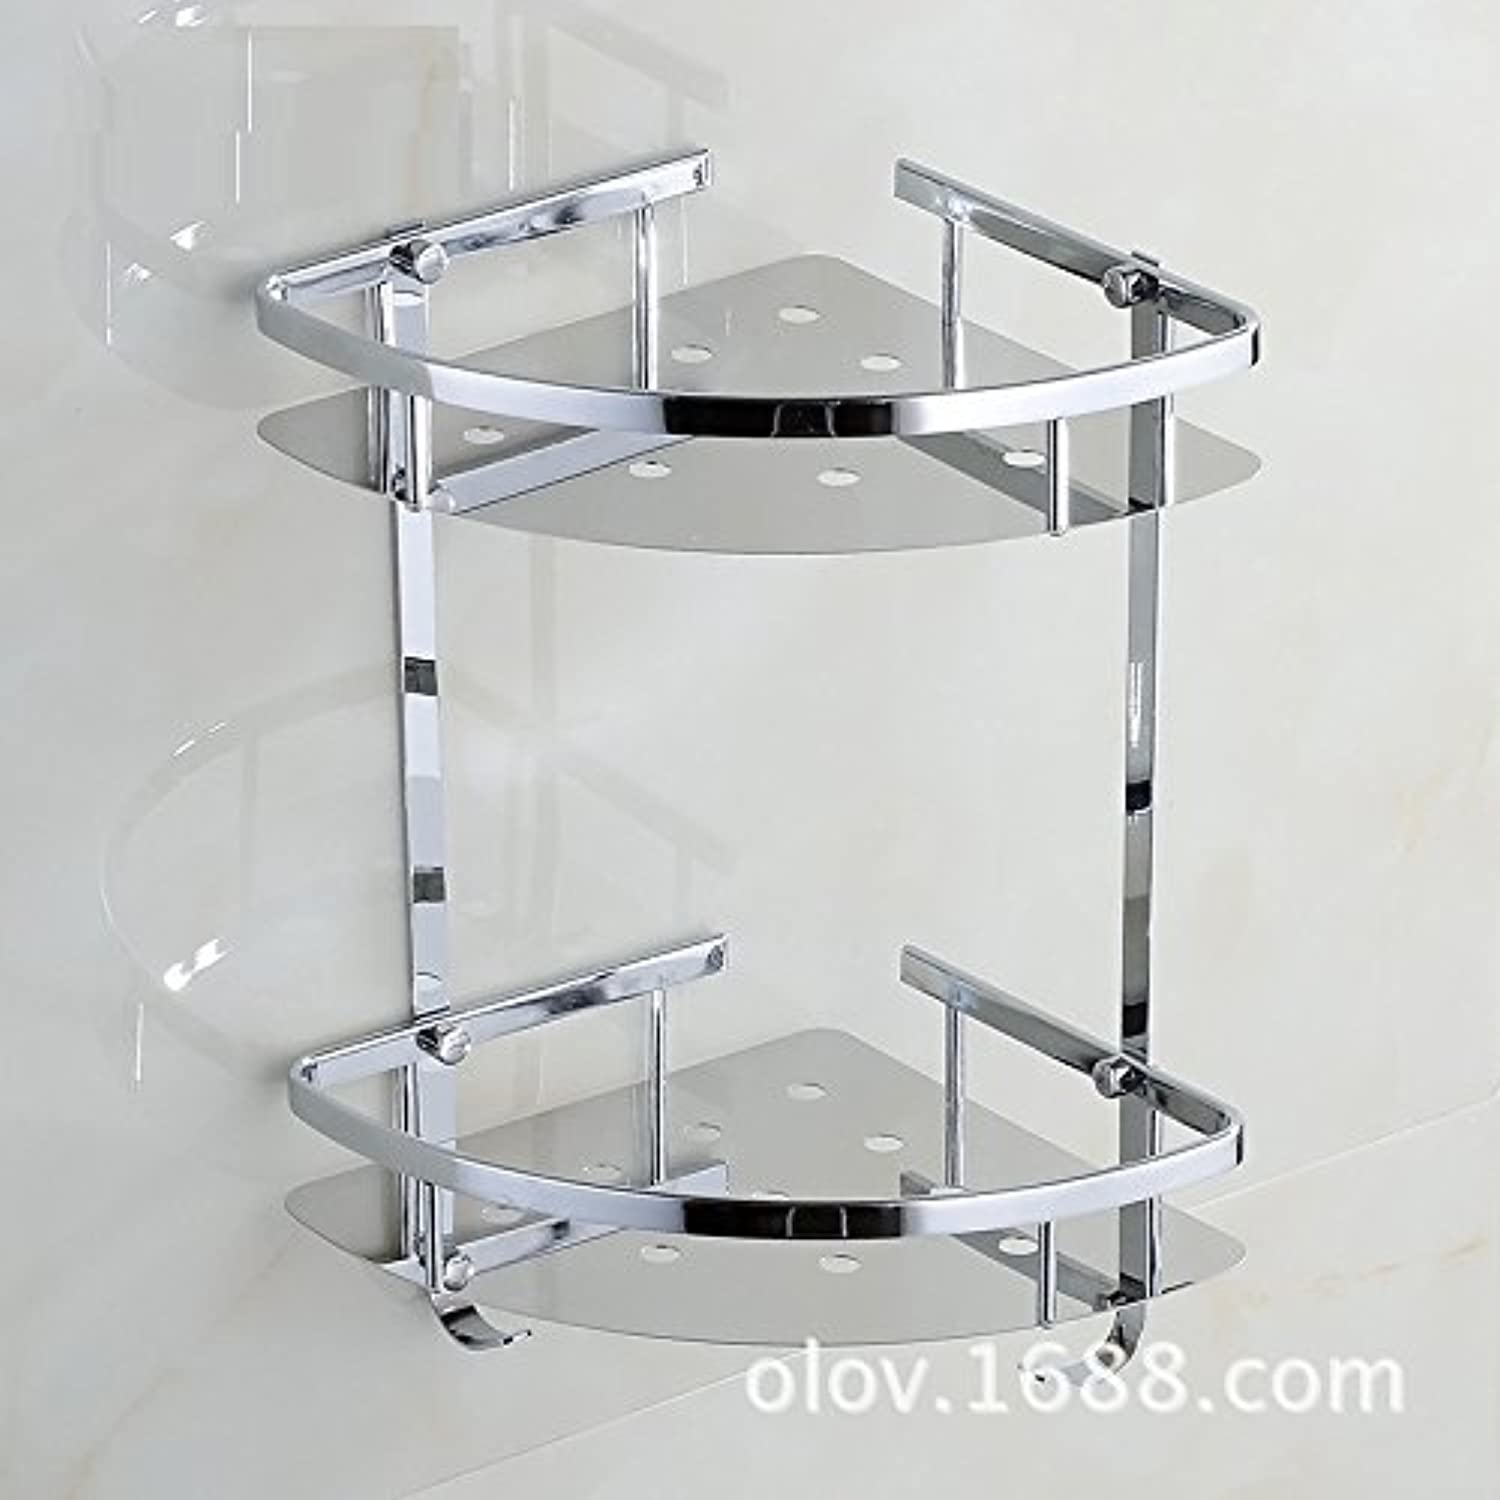 Stainless steel bathroom shelves bathroom shelf wall-mounted toilet triangle basket Stainless steel Tri-single layer